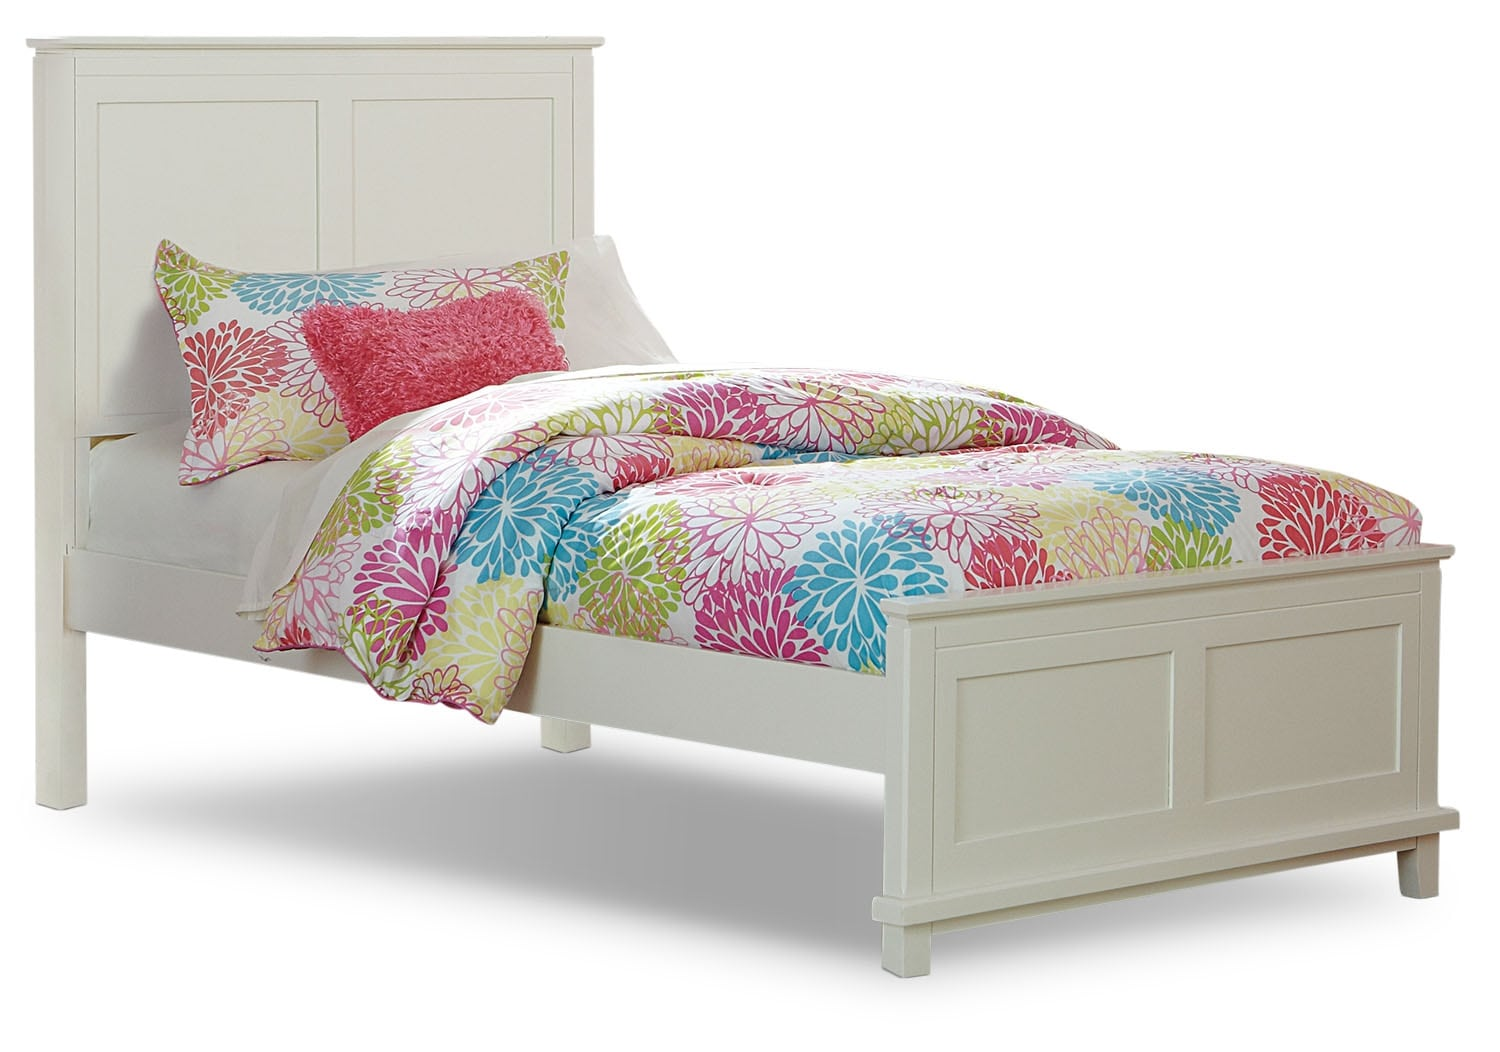 Kids Furniture - Chadwick Full Bed - White